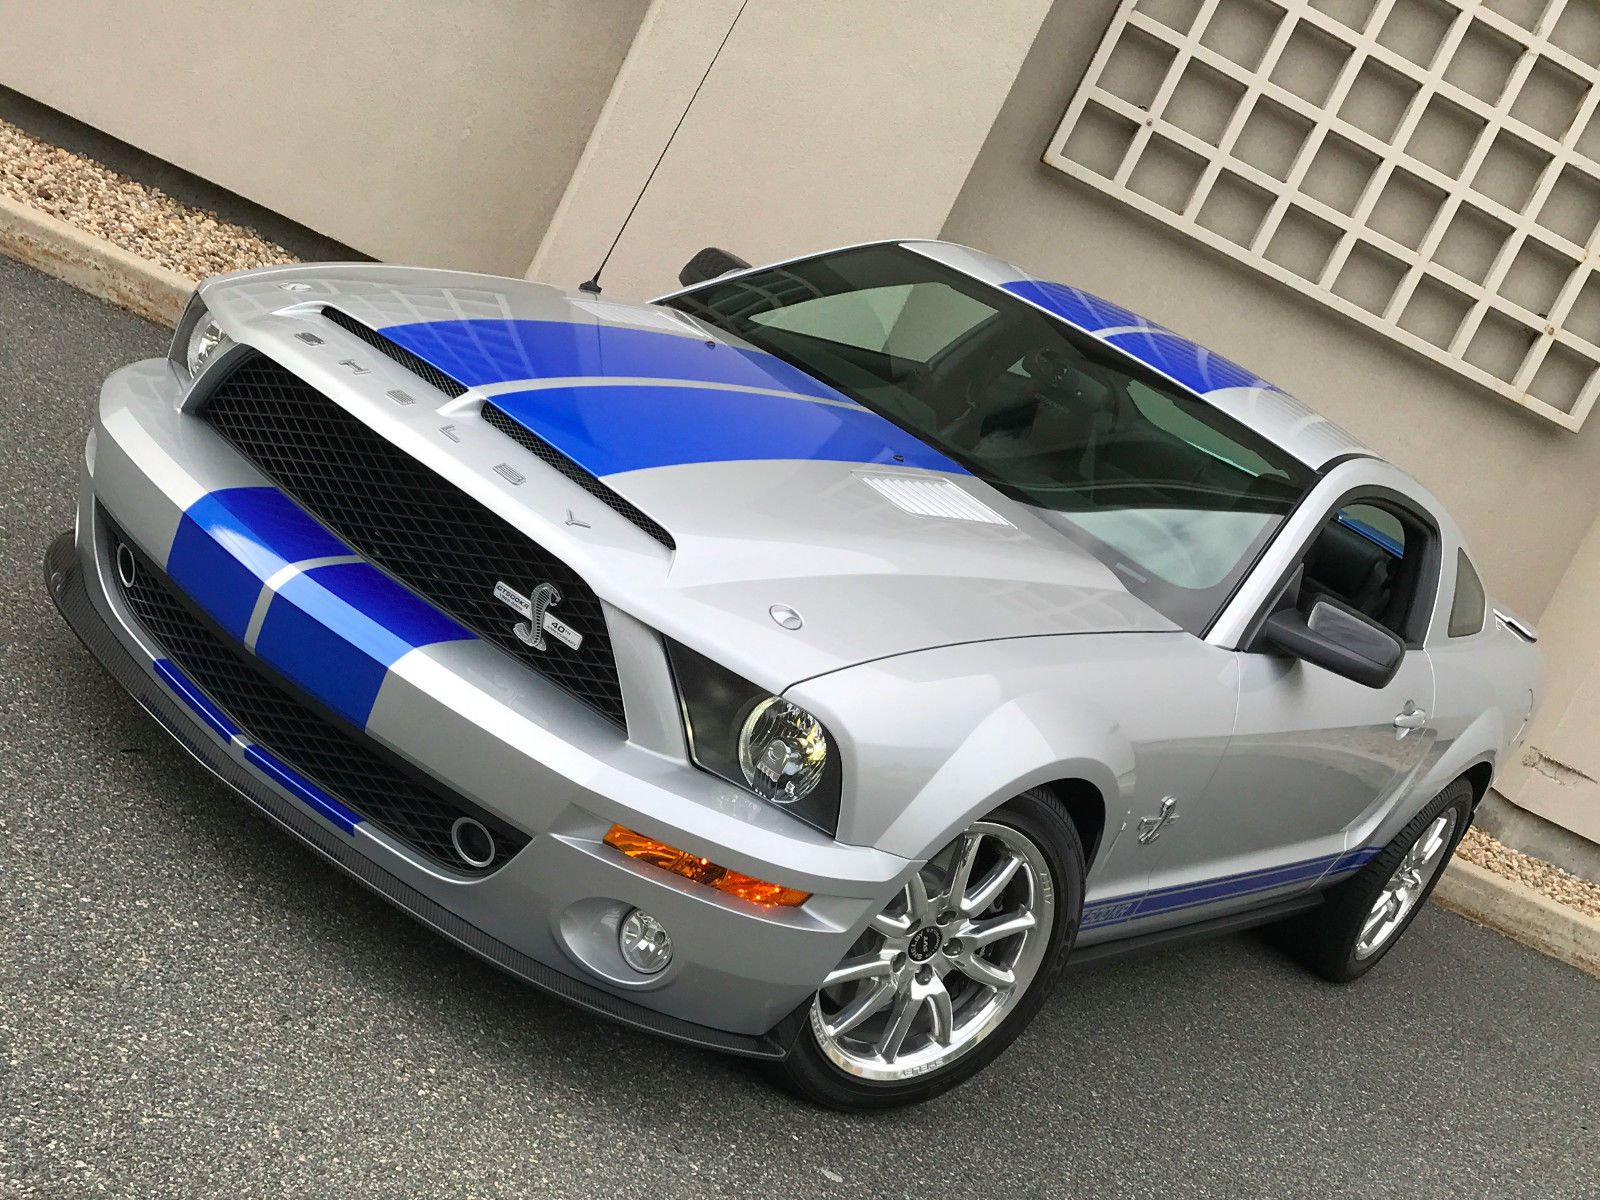 5df858af54455ffad19d7ef04e4c4200 Cool Review About 2008 ford Mustang Gt Horsepower